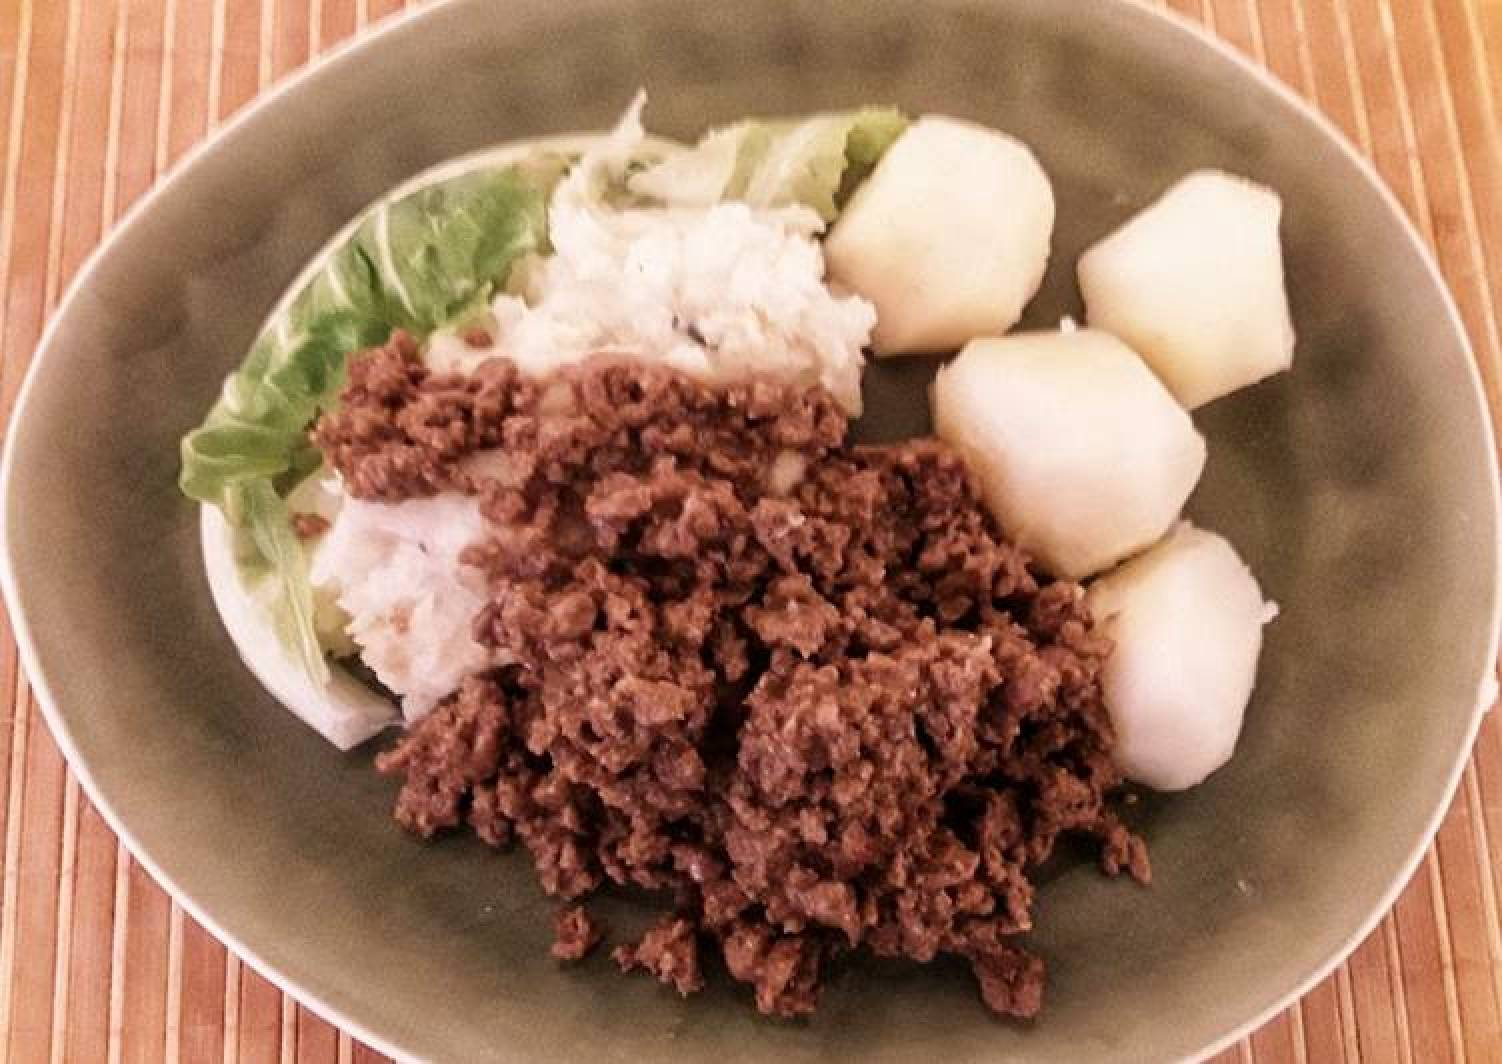 Sig's Cauliflower Puree with Minced Meat